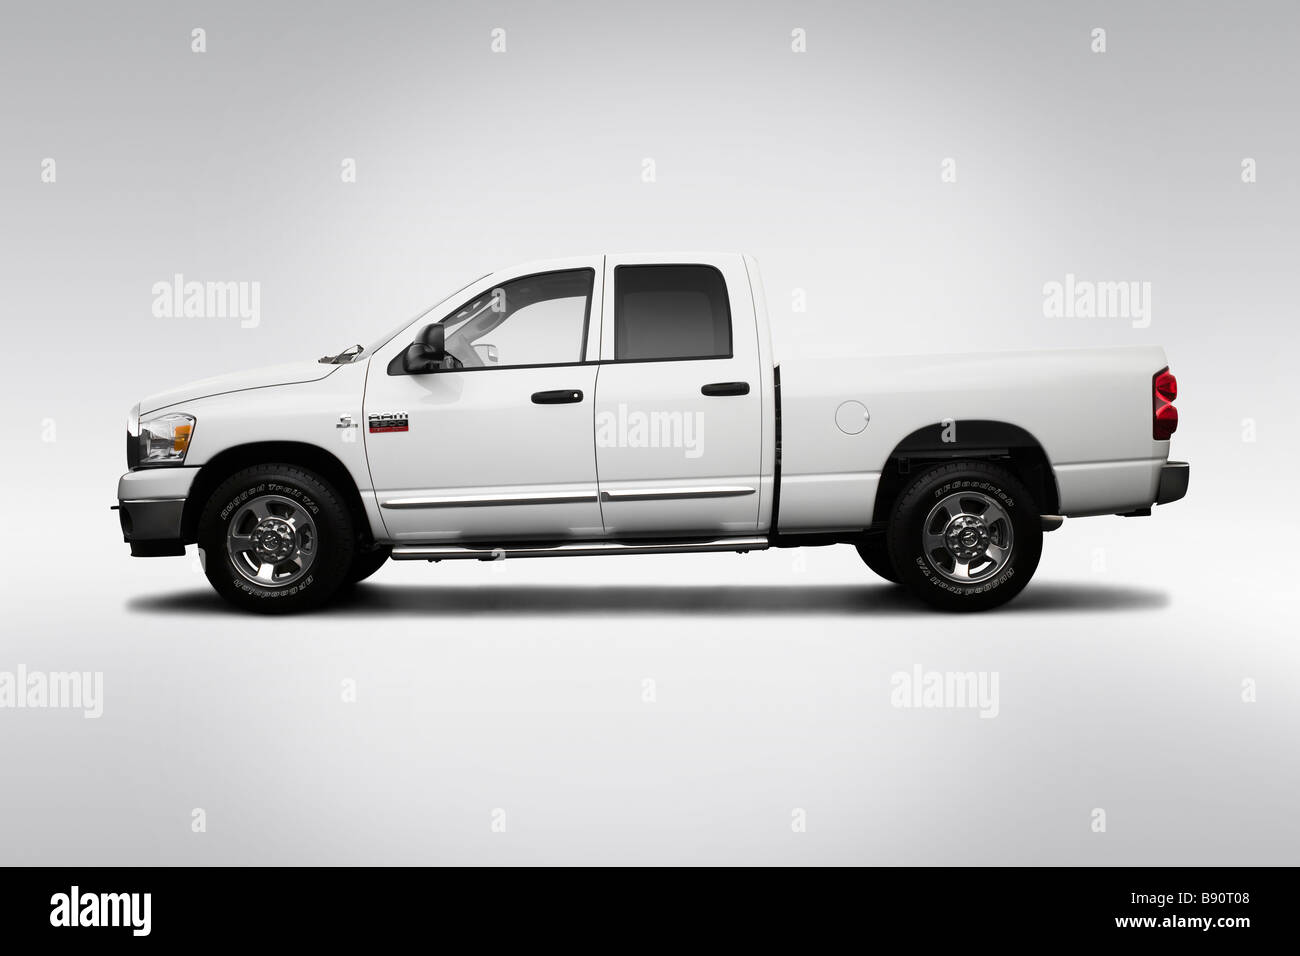 2009 dodge ram 2500 big horn edition in white drivers side profile stock photo royalty free. Black Bedroom Furniture Sets. Home Design Ideas